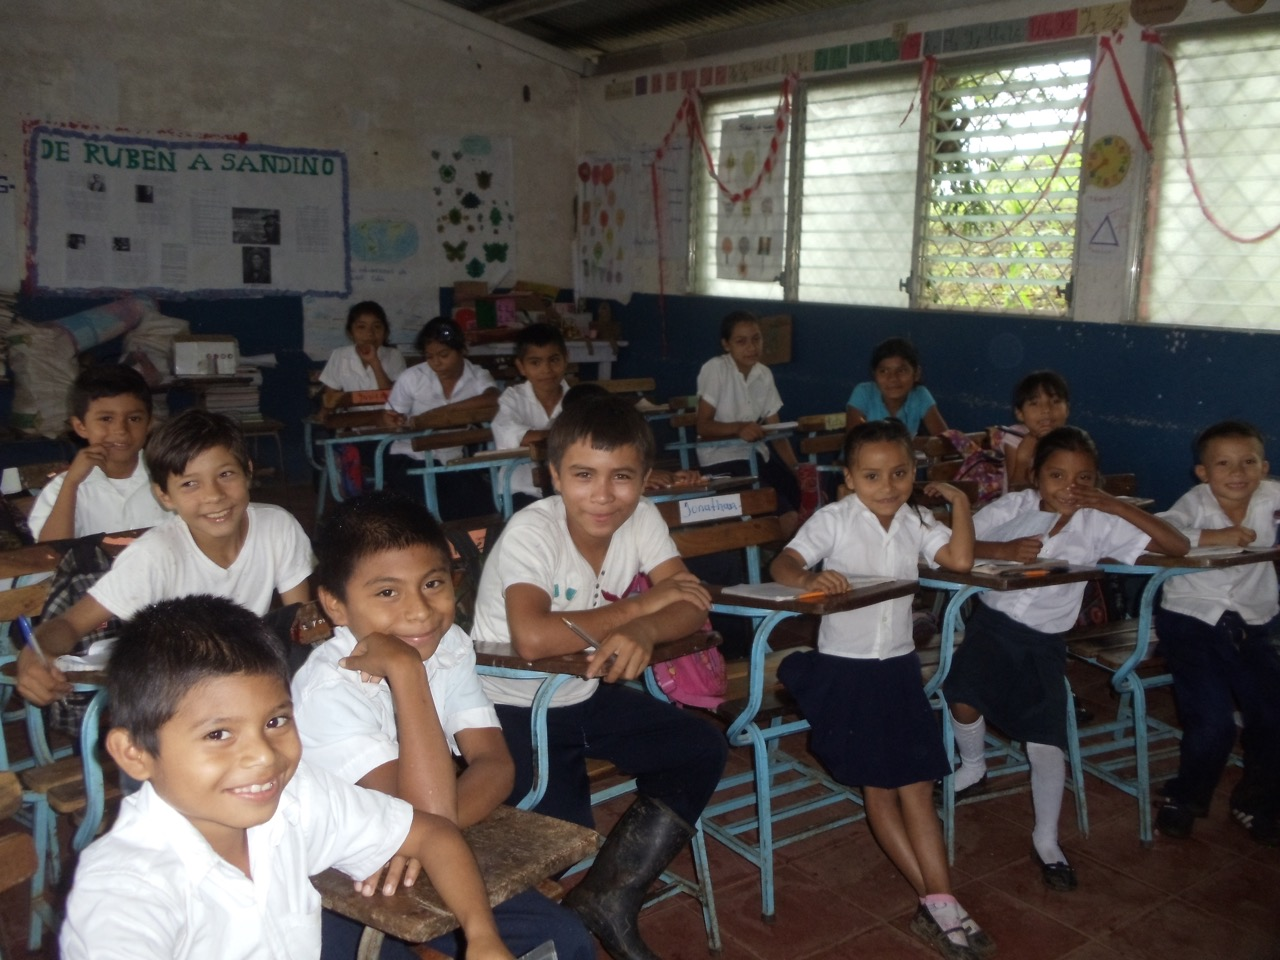 All smiles here: The students at Verapaz Primary School in Verapaz, Nicaragua are enjoying their newly-solarized classroom.